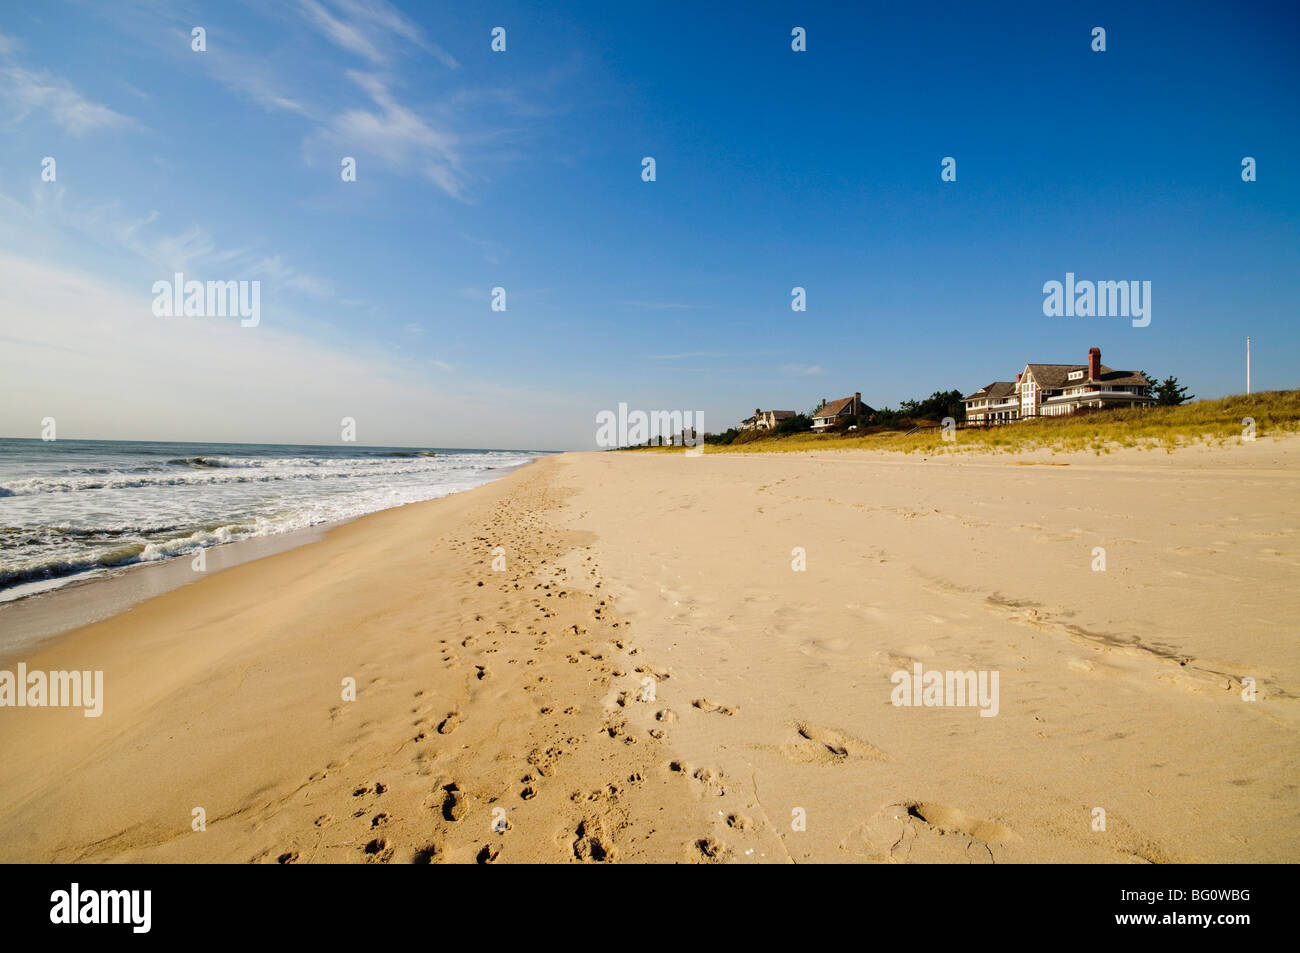 Main Beach, East Hampton, den Hamptons, Long Island, New York Staat, Vereinigte Staaten von Amerika, Nordamerika Stockbild